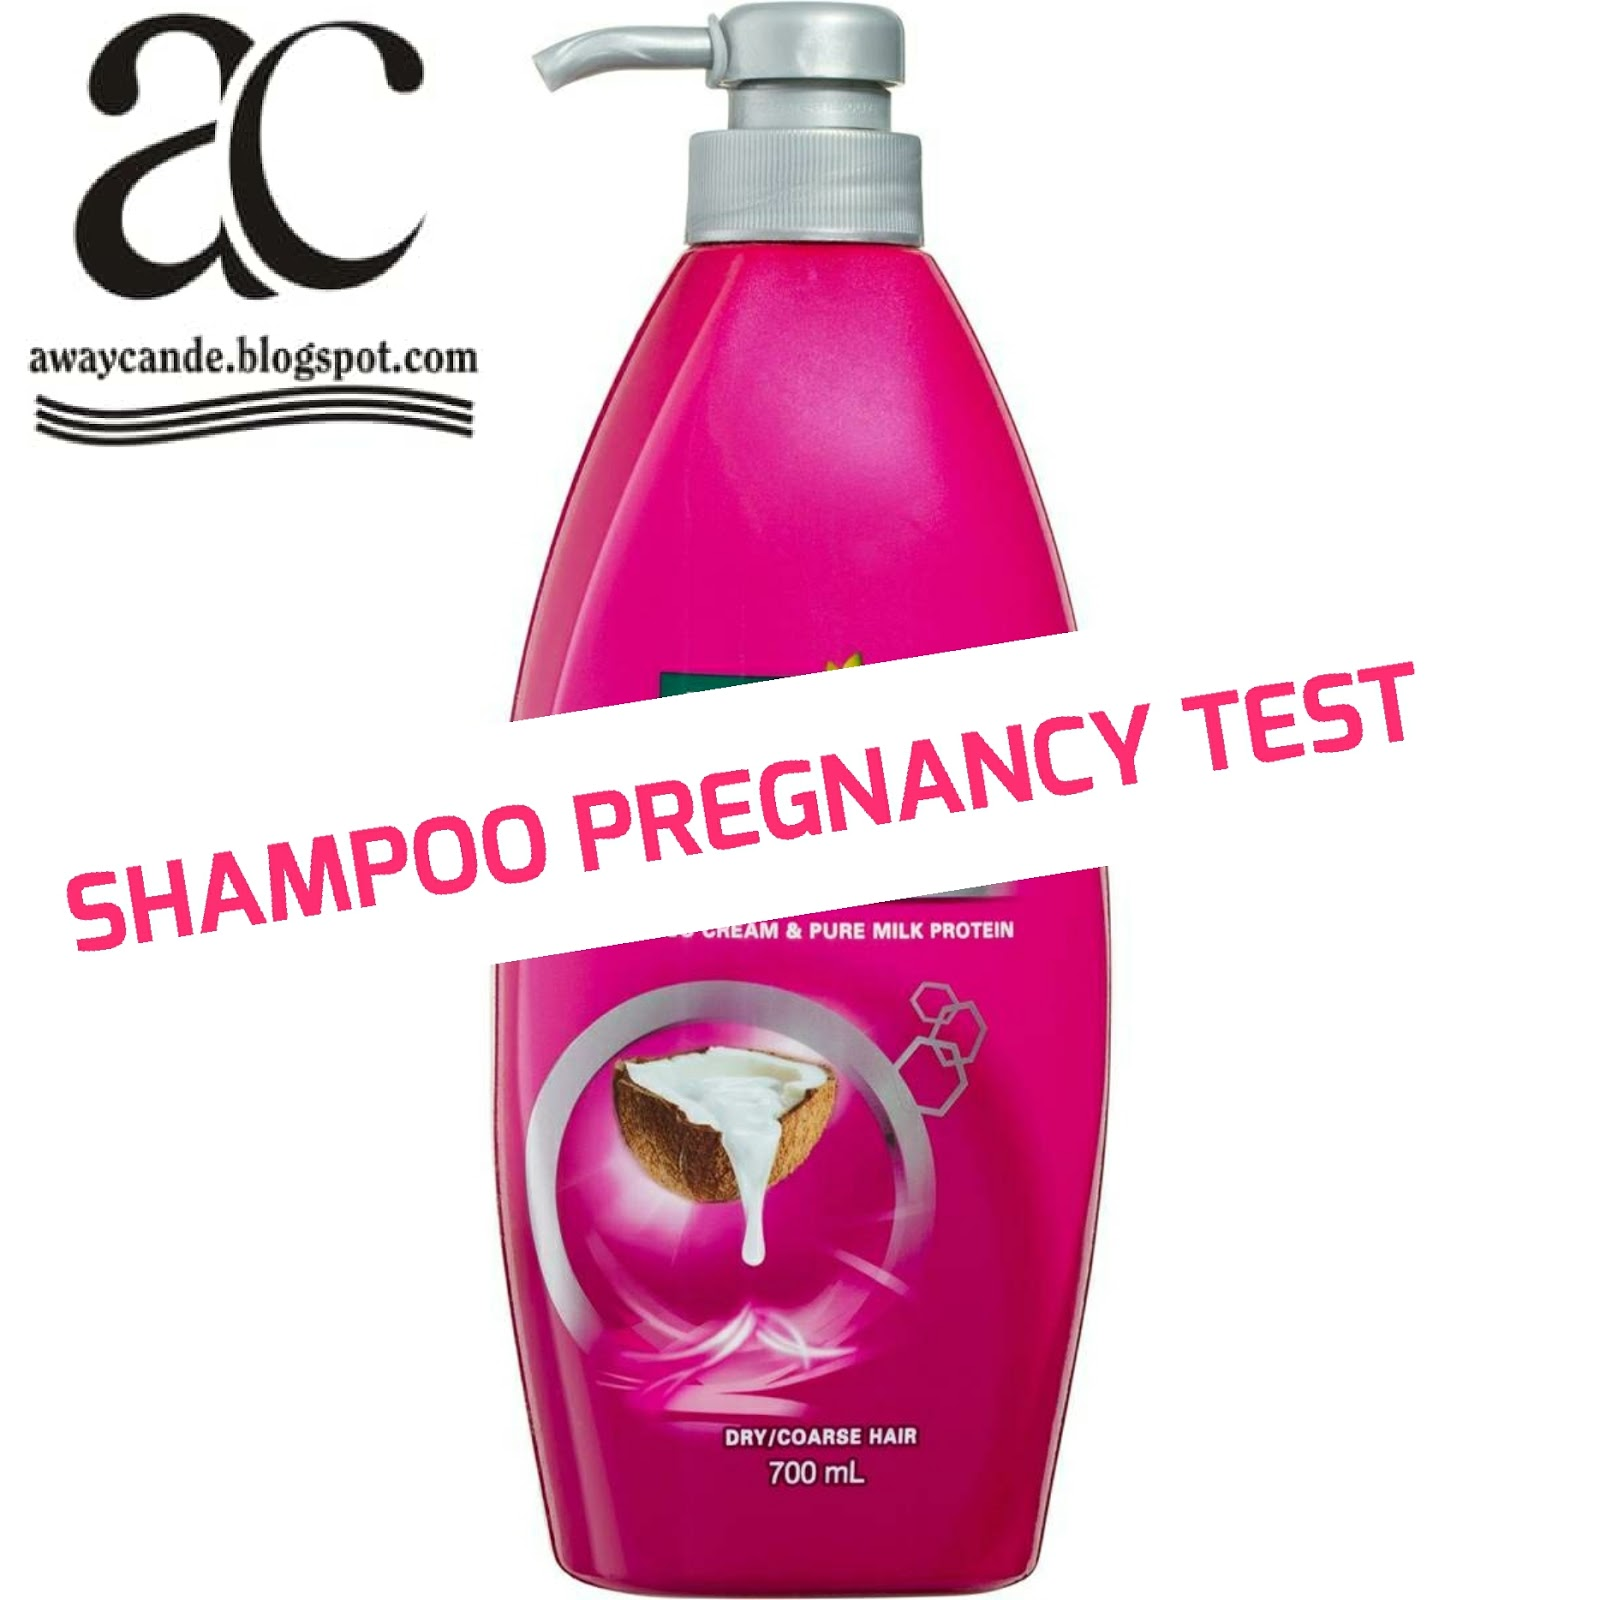 How To Test If You Are Pregnant Or Not At Home With Shampoo